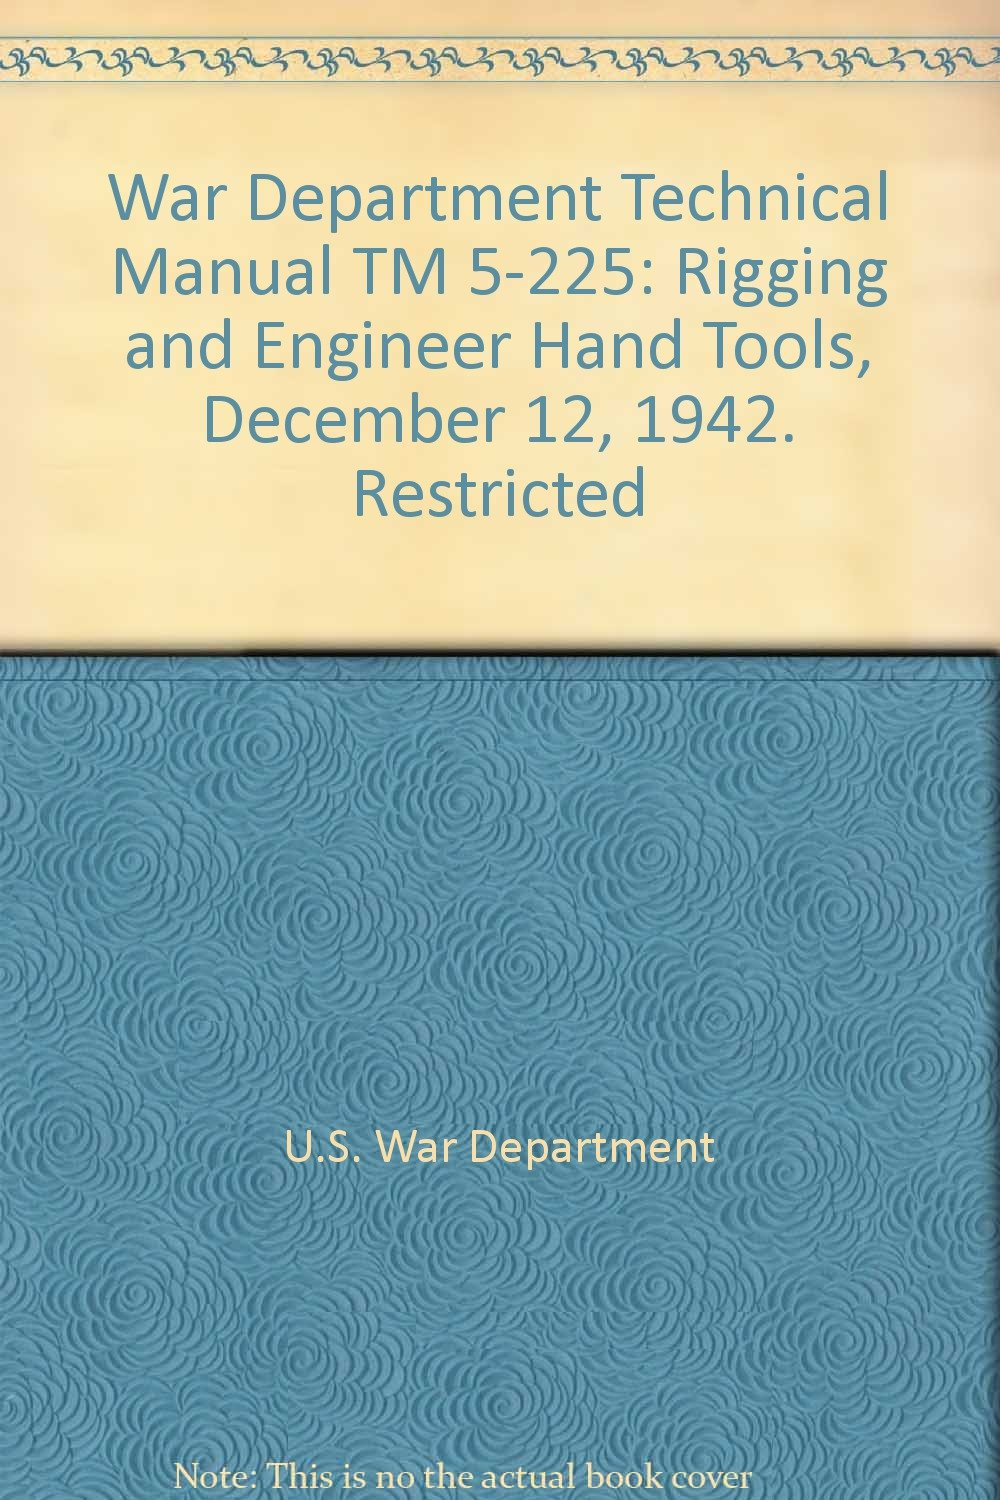 War Department Technical Manual TM 5-225: Rigging and Engineer Hand Tools, December 12, 1942.